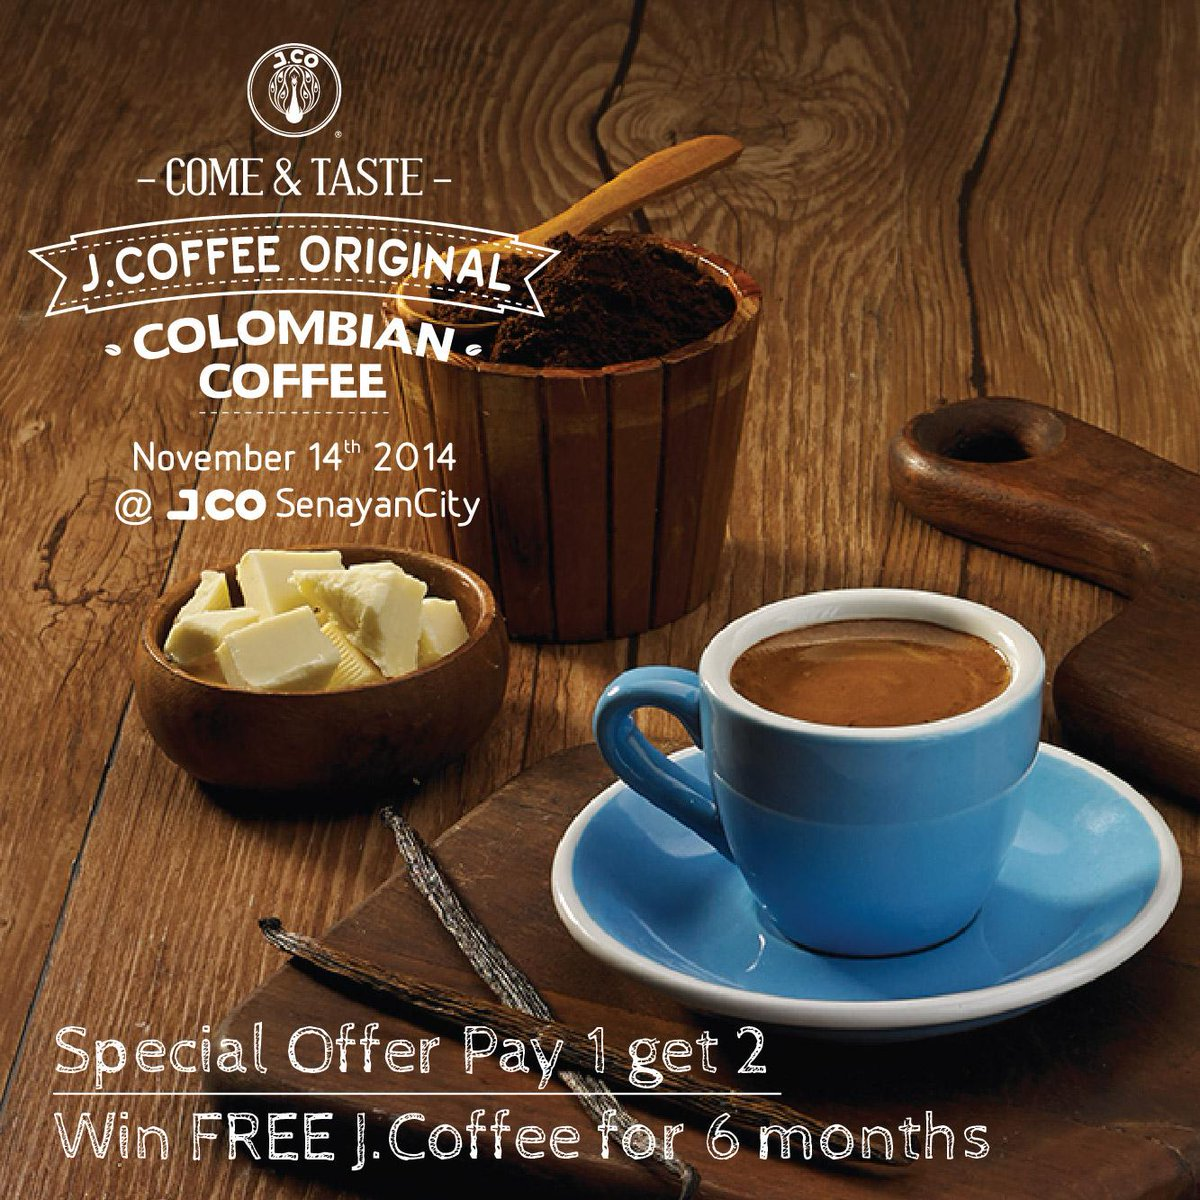 RETWEET this post and have a chance to win FREE http://t.co/44hBNcXTsM  for 6 months! #JCoffee http://t.co/AE4KAkKgQS